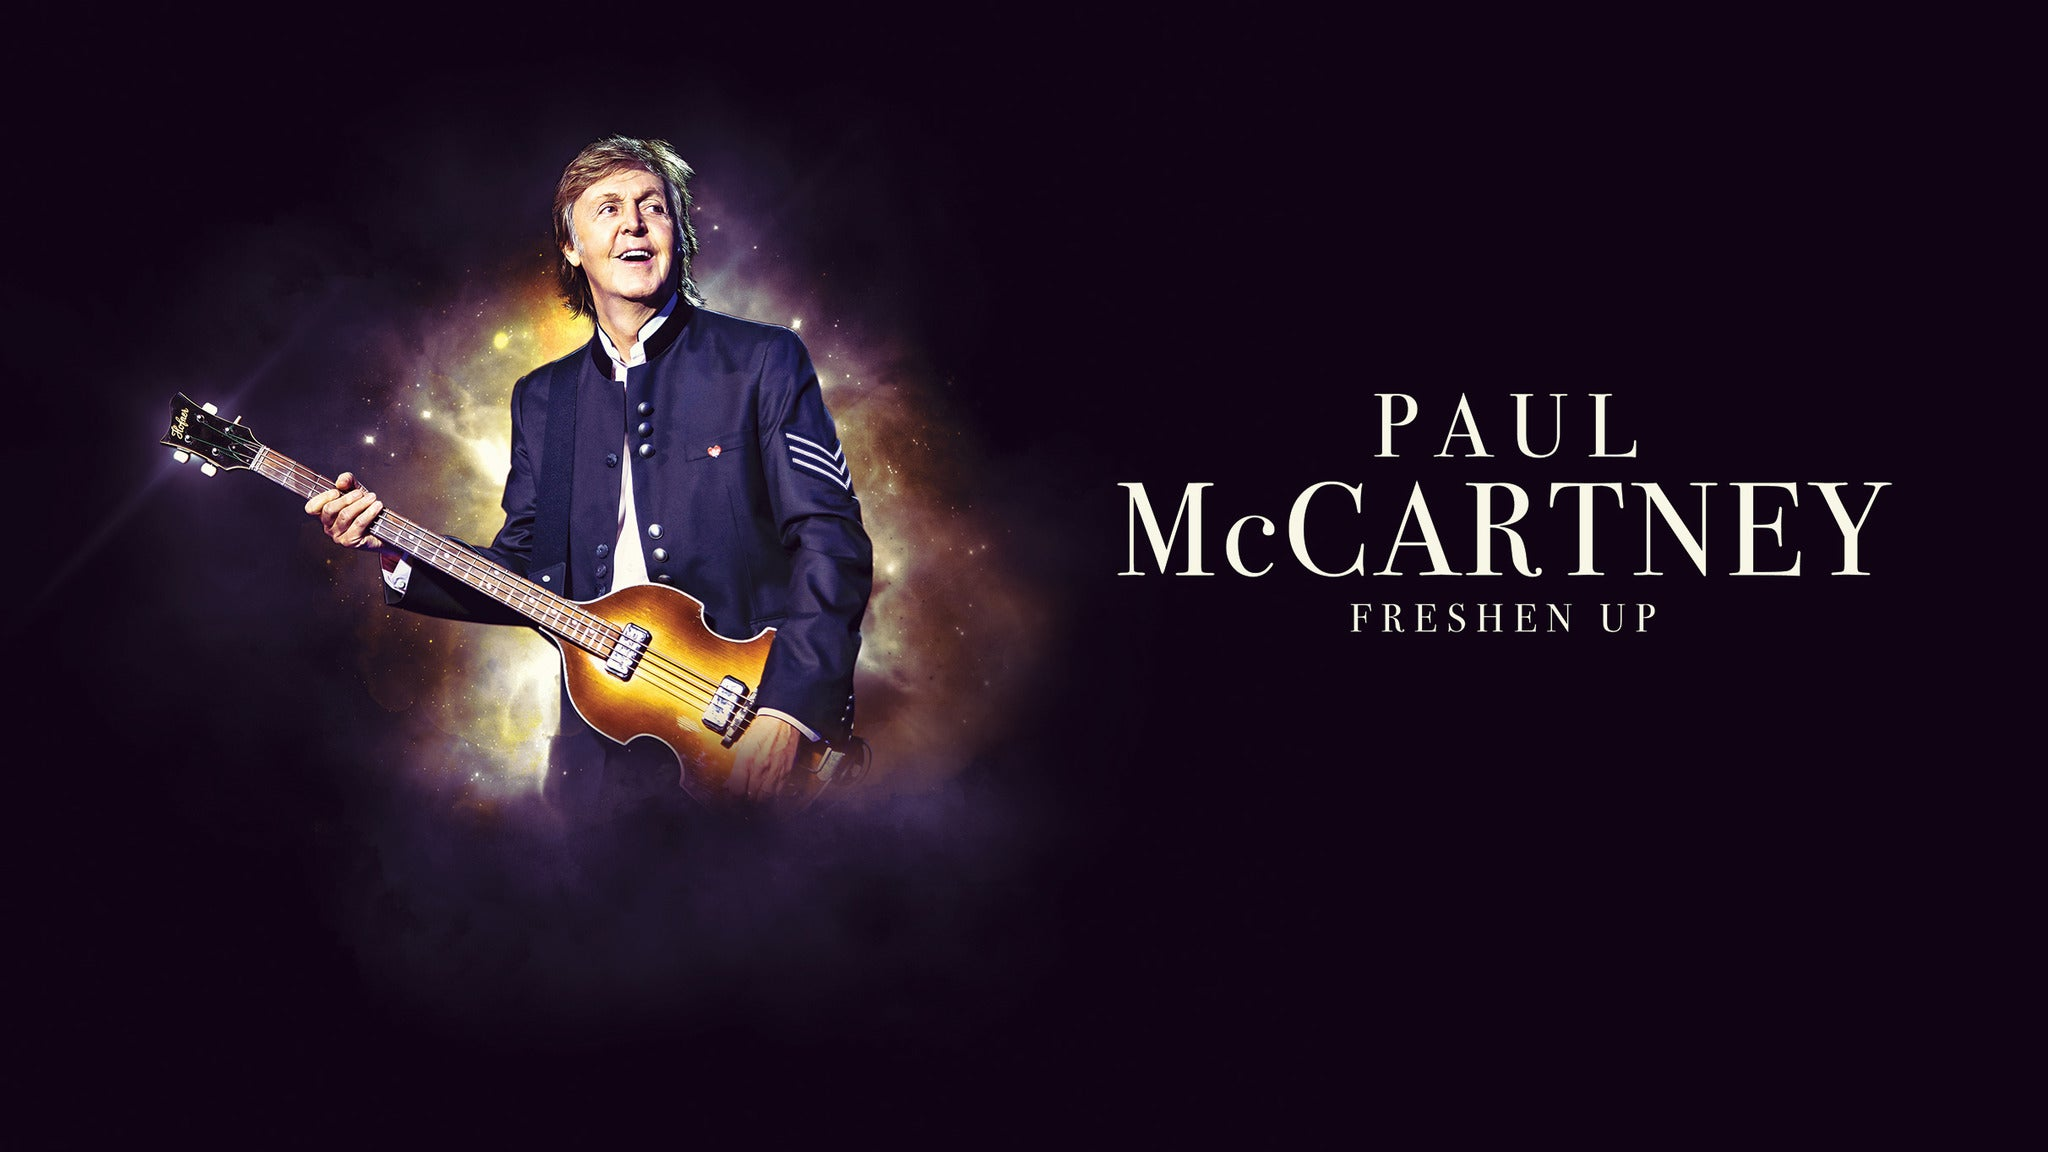 Paul McCartney Hot Sound UPGRADE - Ticket Not Included